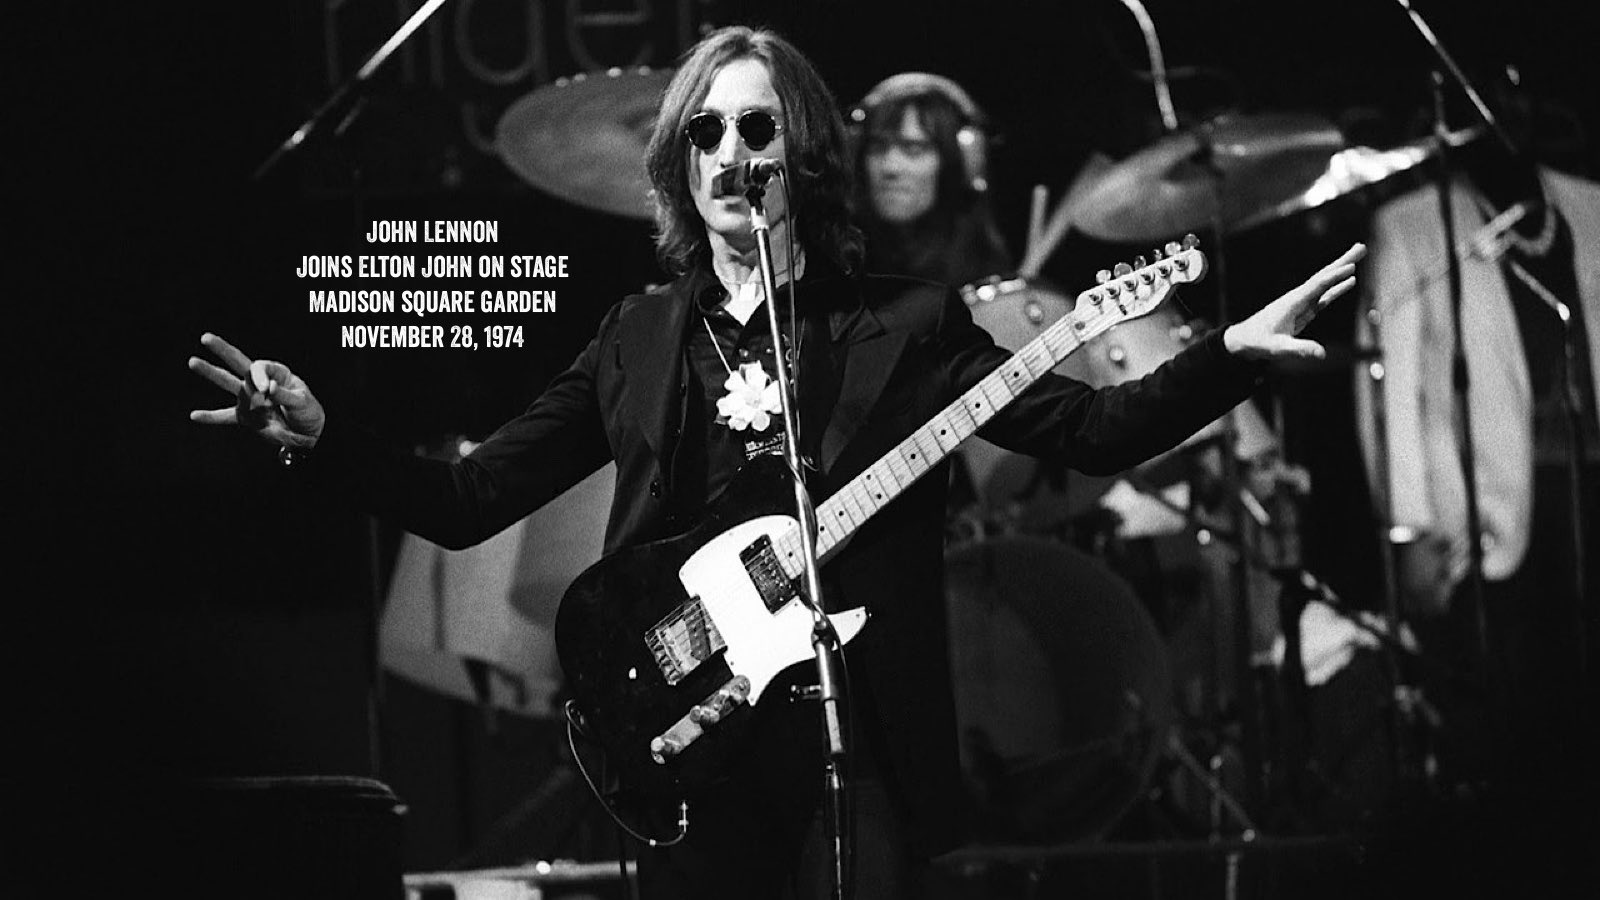 Jaigurudeva On Twitter John Lennon S Last Live Performance Took Place 45 Years Ago Today On November 28th 1974 At Madison Square Garden In New York City Lennon Had Promised Elton John That